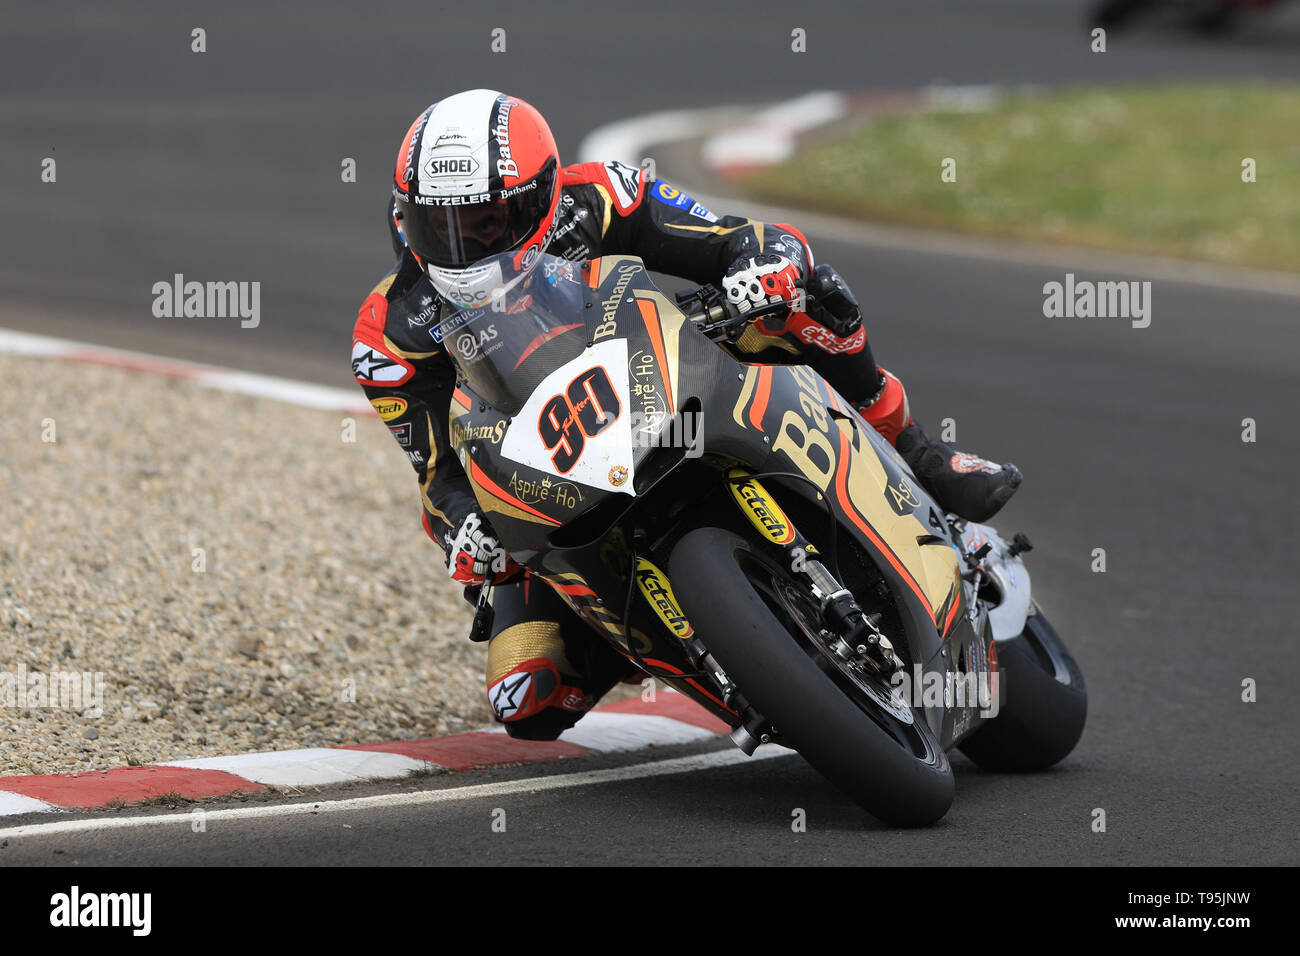 Portrush, Northern Ireland. 16th May, 2019. International North West 200 Motorcycle road racing, Thursday practice and evening racing; Michael Rutter was 7th fastest on the Bathams Racing/Aspir-Ho Honda during the SuperBike qualifying session Credit: Action Plus Sports/Alamy Live News - Stock Image